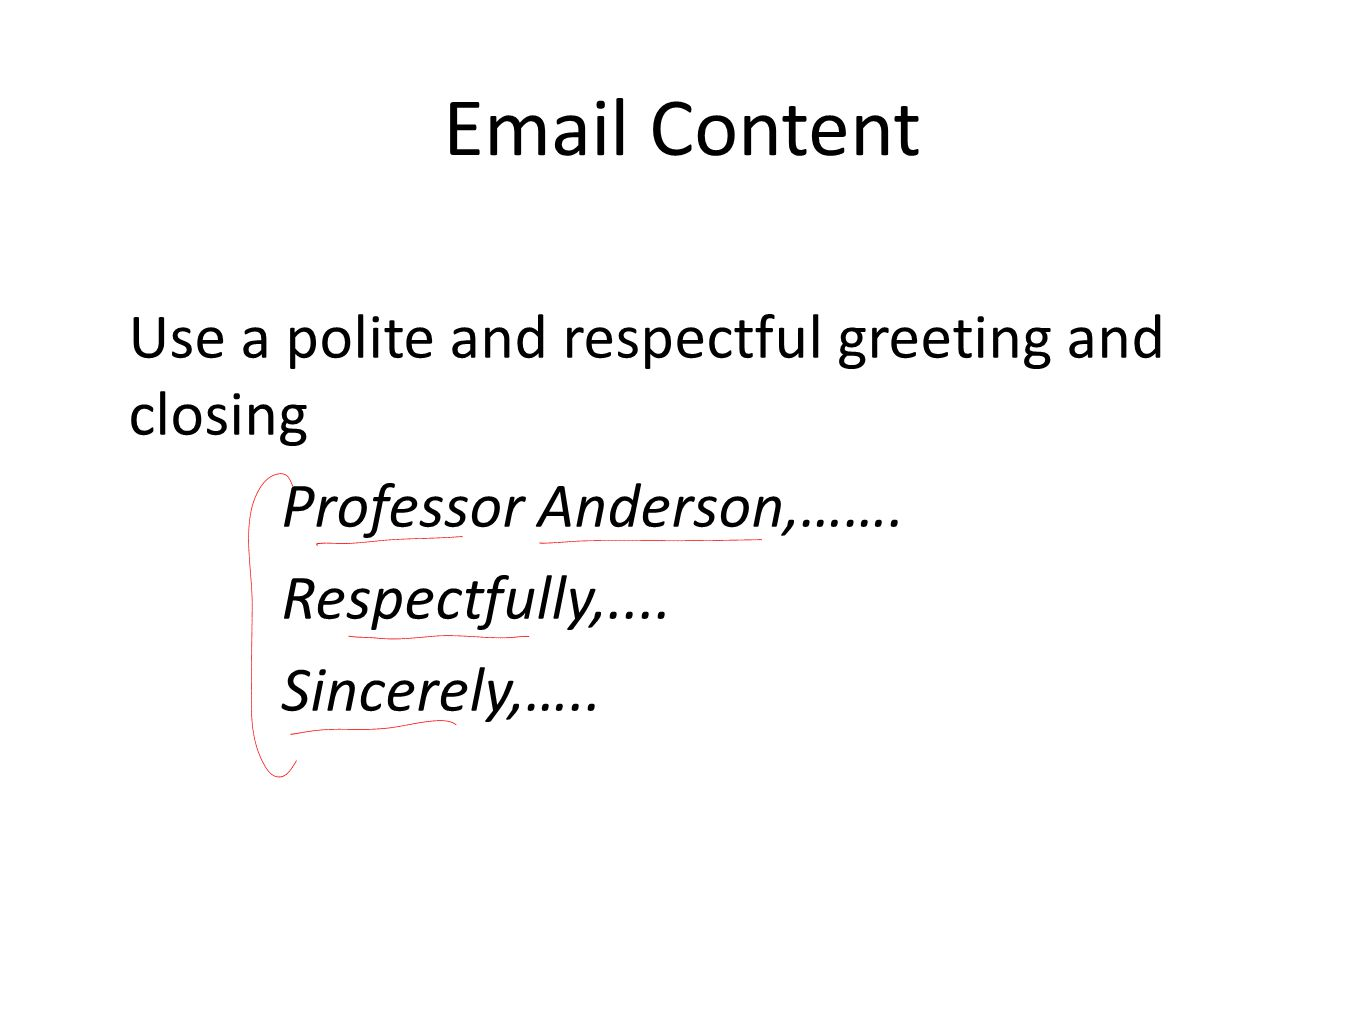 Email greetings and closings gallery greeting card examples lecture 20 professional communication writing ppt download email content use a polite and respectful greeting and kristyandbryce Choice Image